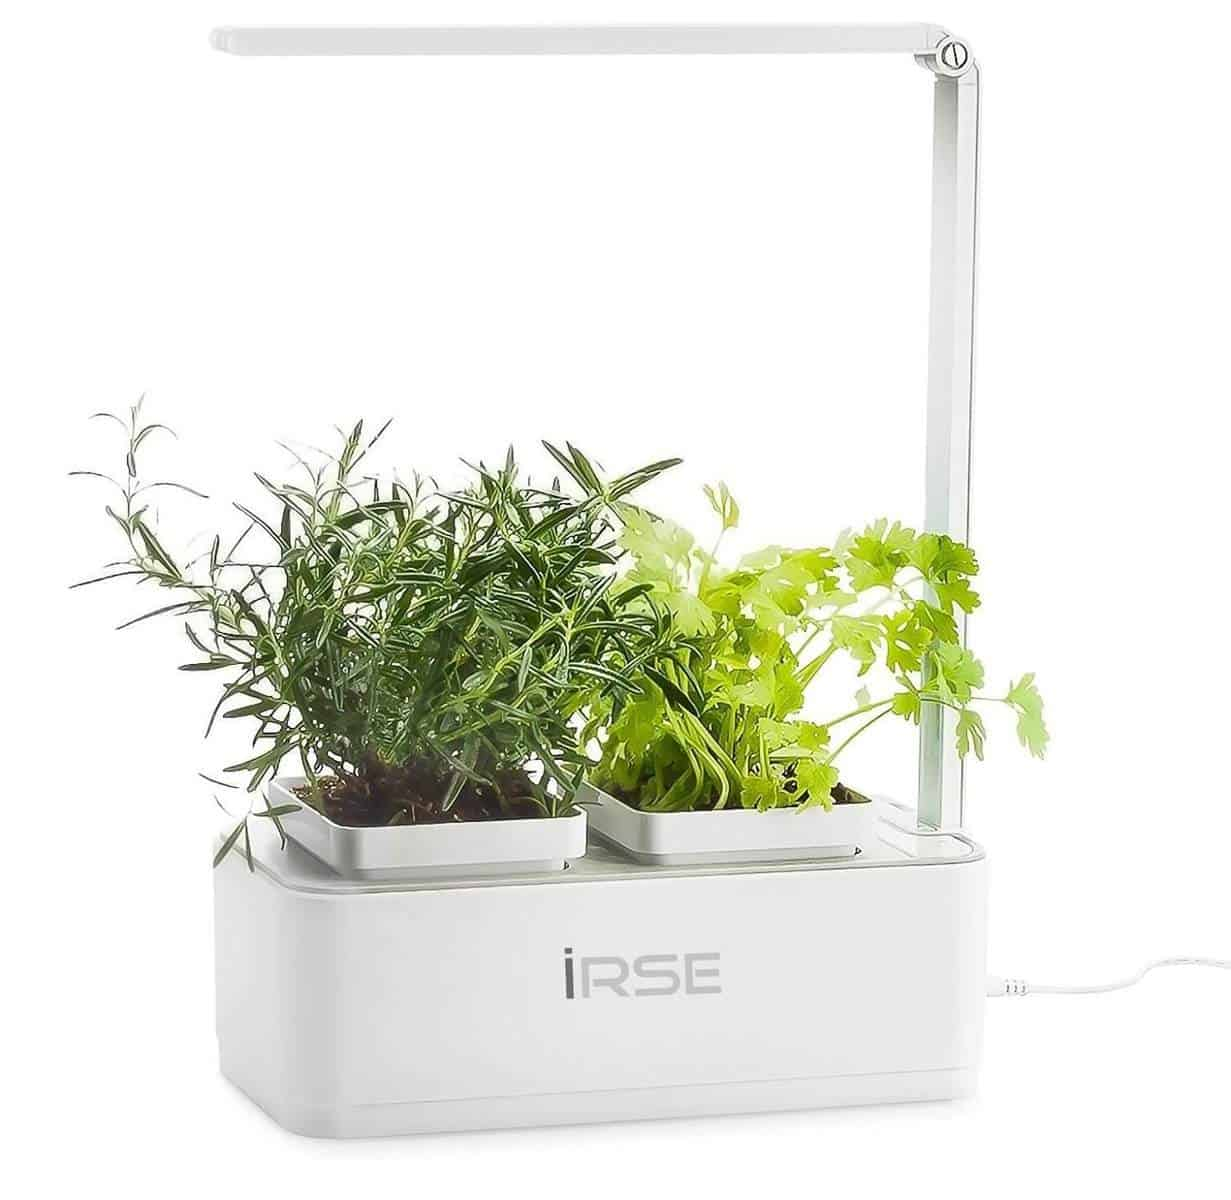 IRSE Indoor Garden Kit. Best Durability